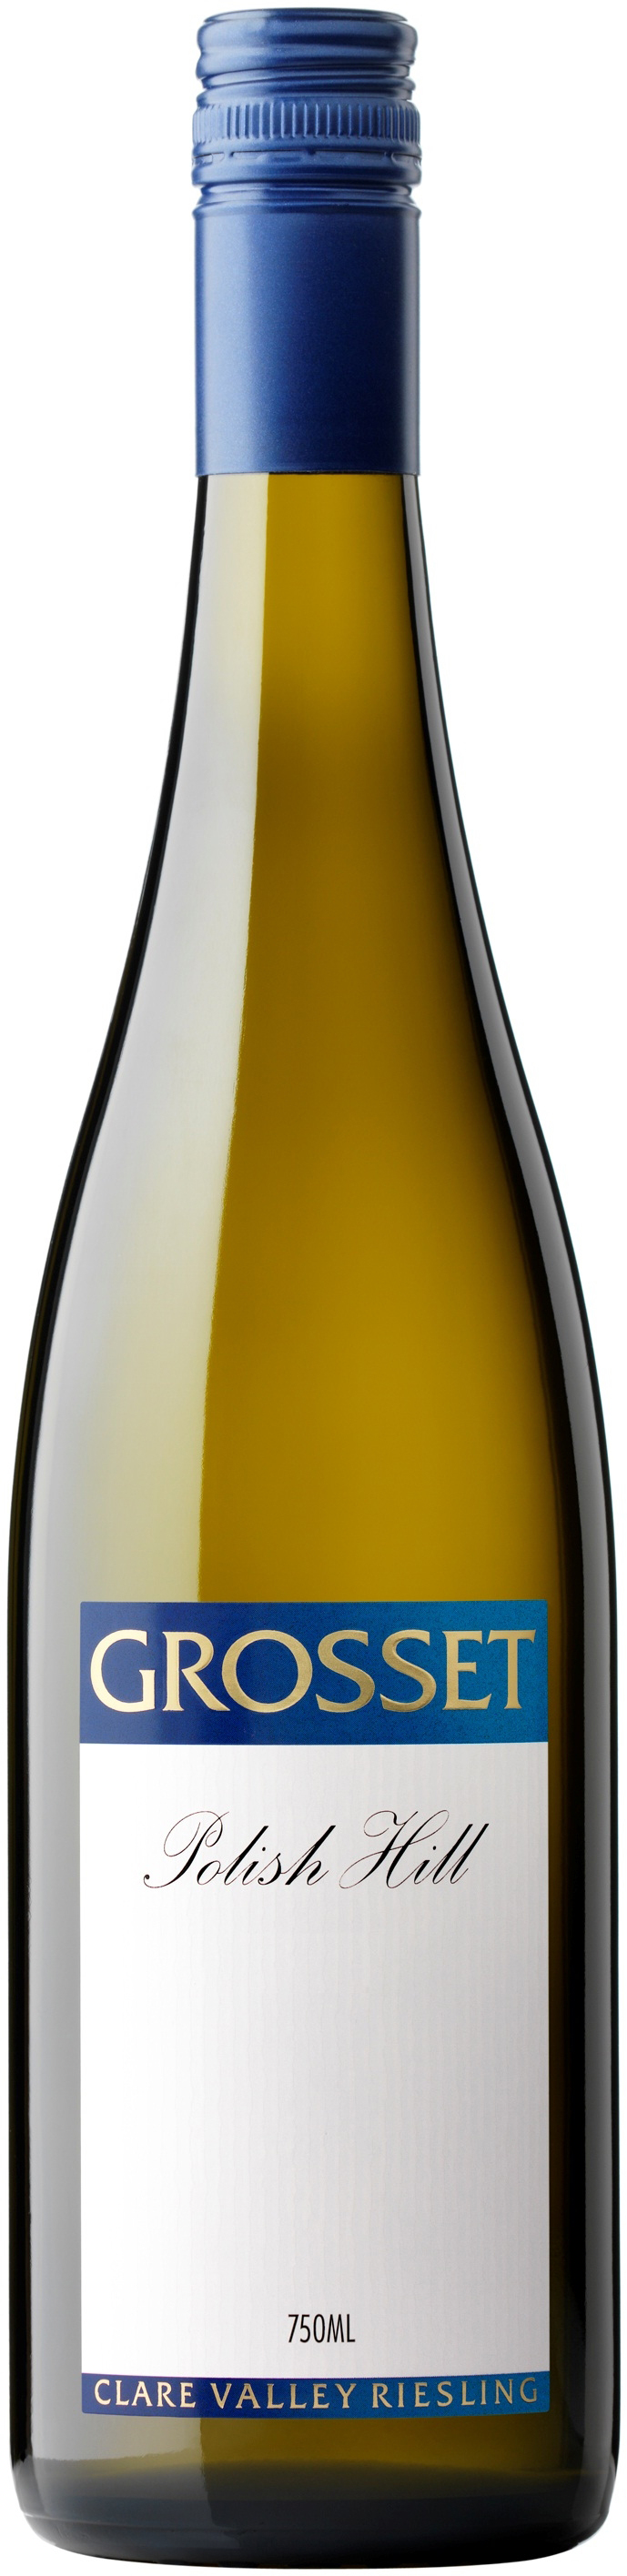 Grosset, `Polish Hill` Clare Valley Riesling 2018